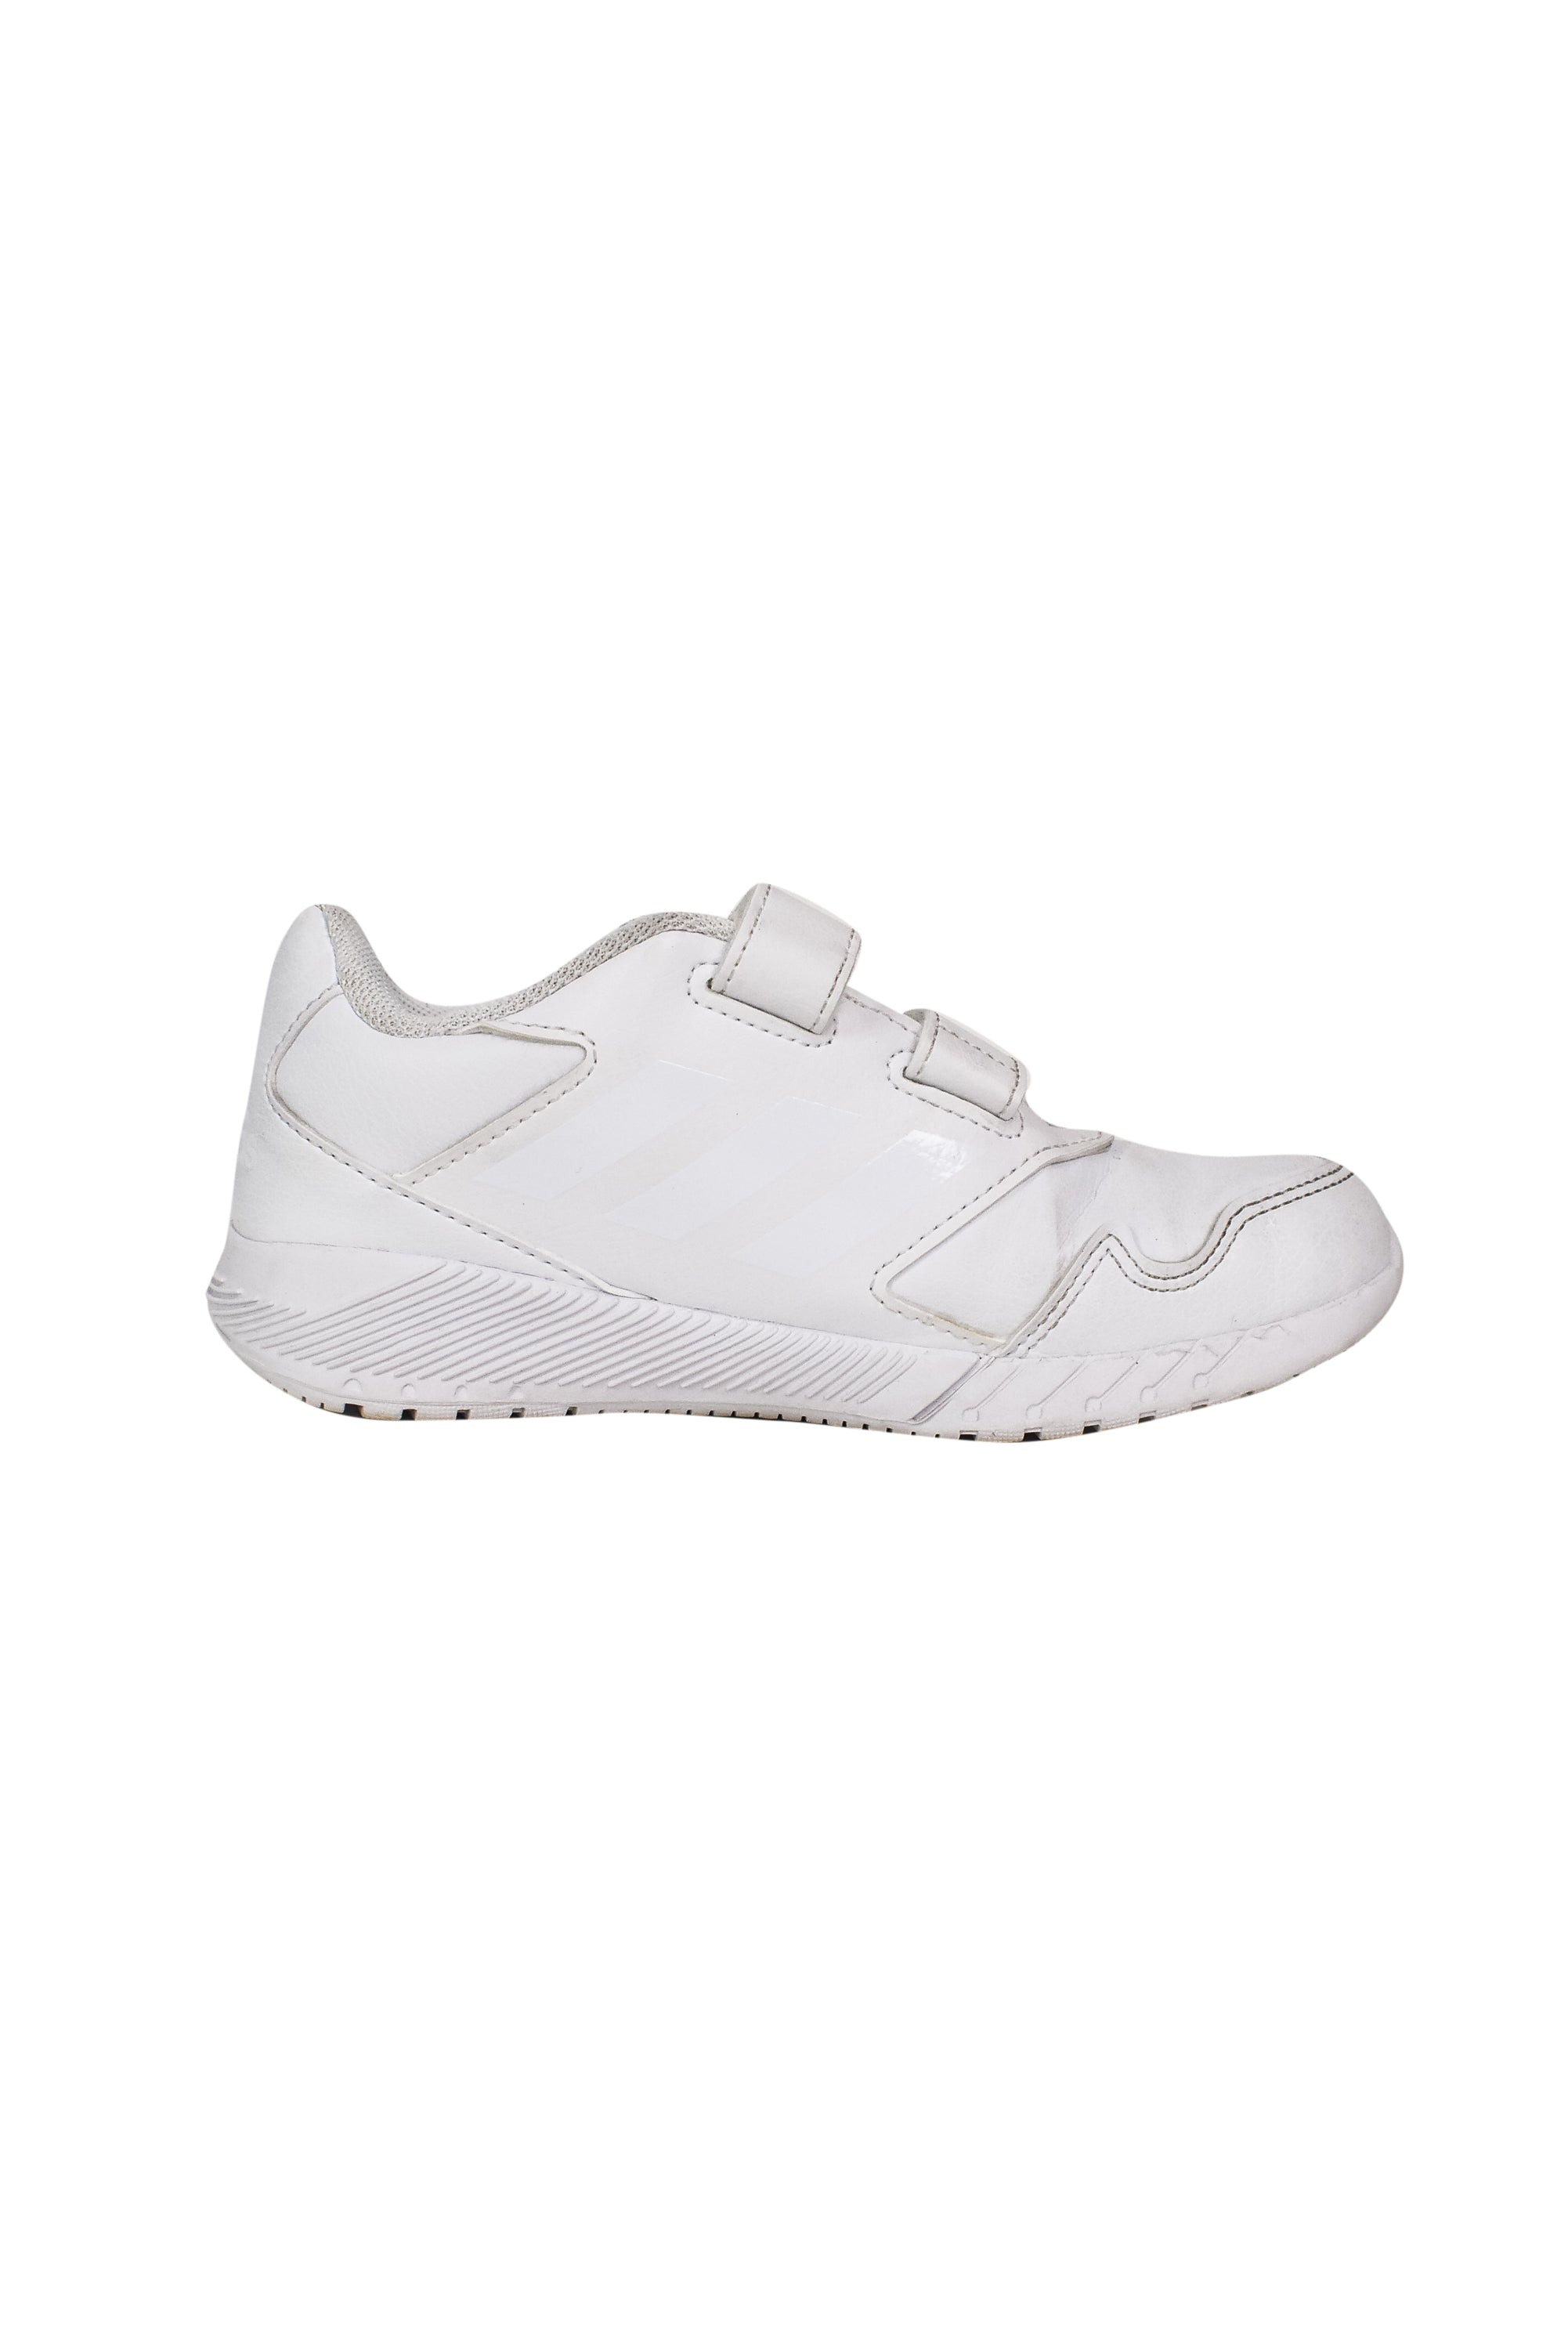 10035527 Adidas Kids~Shoes 6-7T (EU 31.5) at Retykle